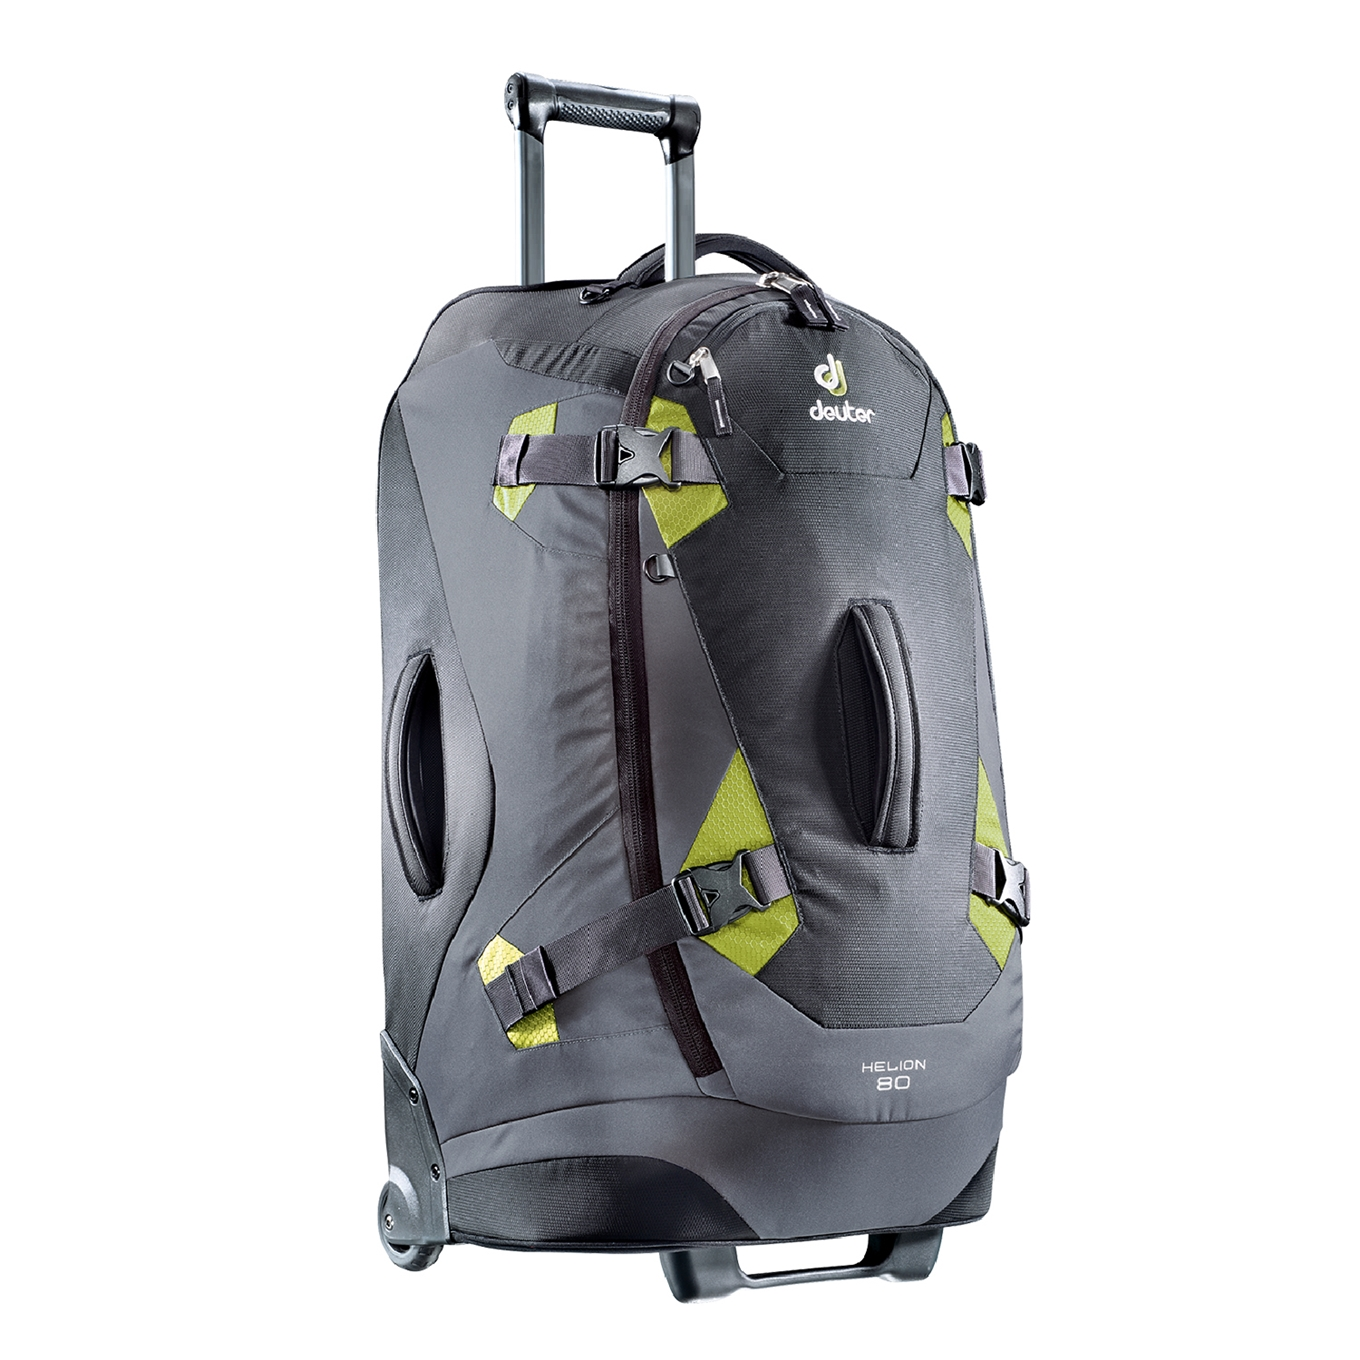 Deuter Helion 80 Travel Backpack black/moss Reistas <br/>€ 229.00 <br/> <a href='https://tc.tradetracker.net/?c=15082&m=779702&a=107398&u=http%3A%2F%2Fwww.travelbags.nl%3A80%2Fdeuter-helion-80-travel-backpack-black-moss.html' target='_blank'>Bestellen</a>